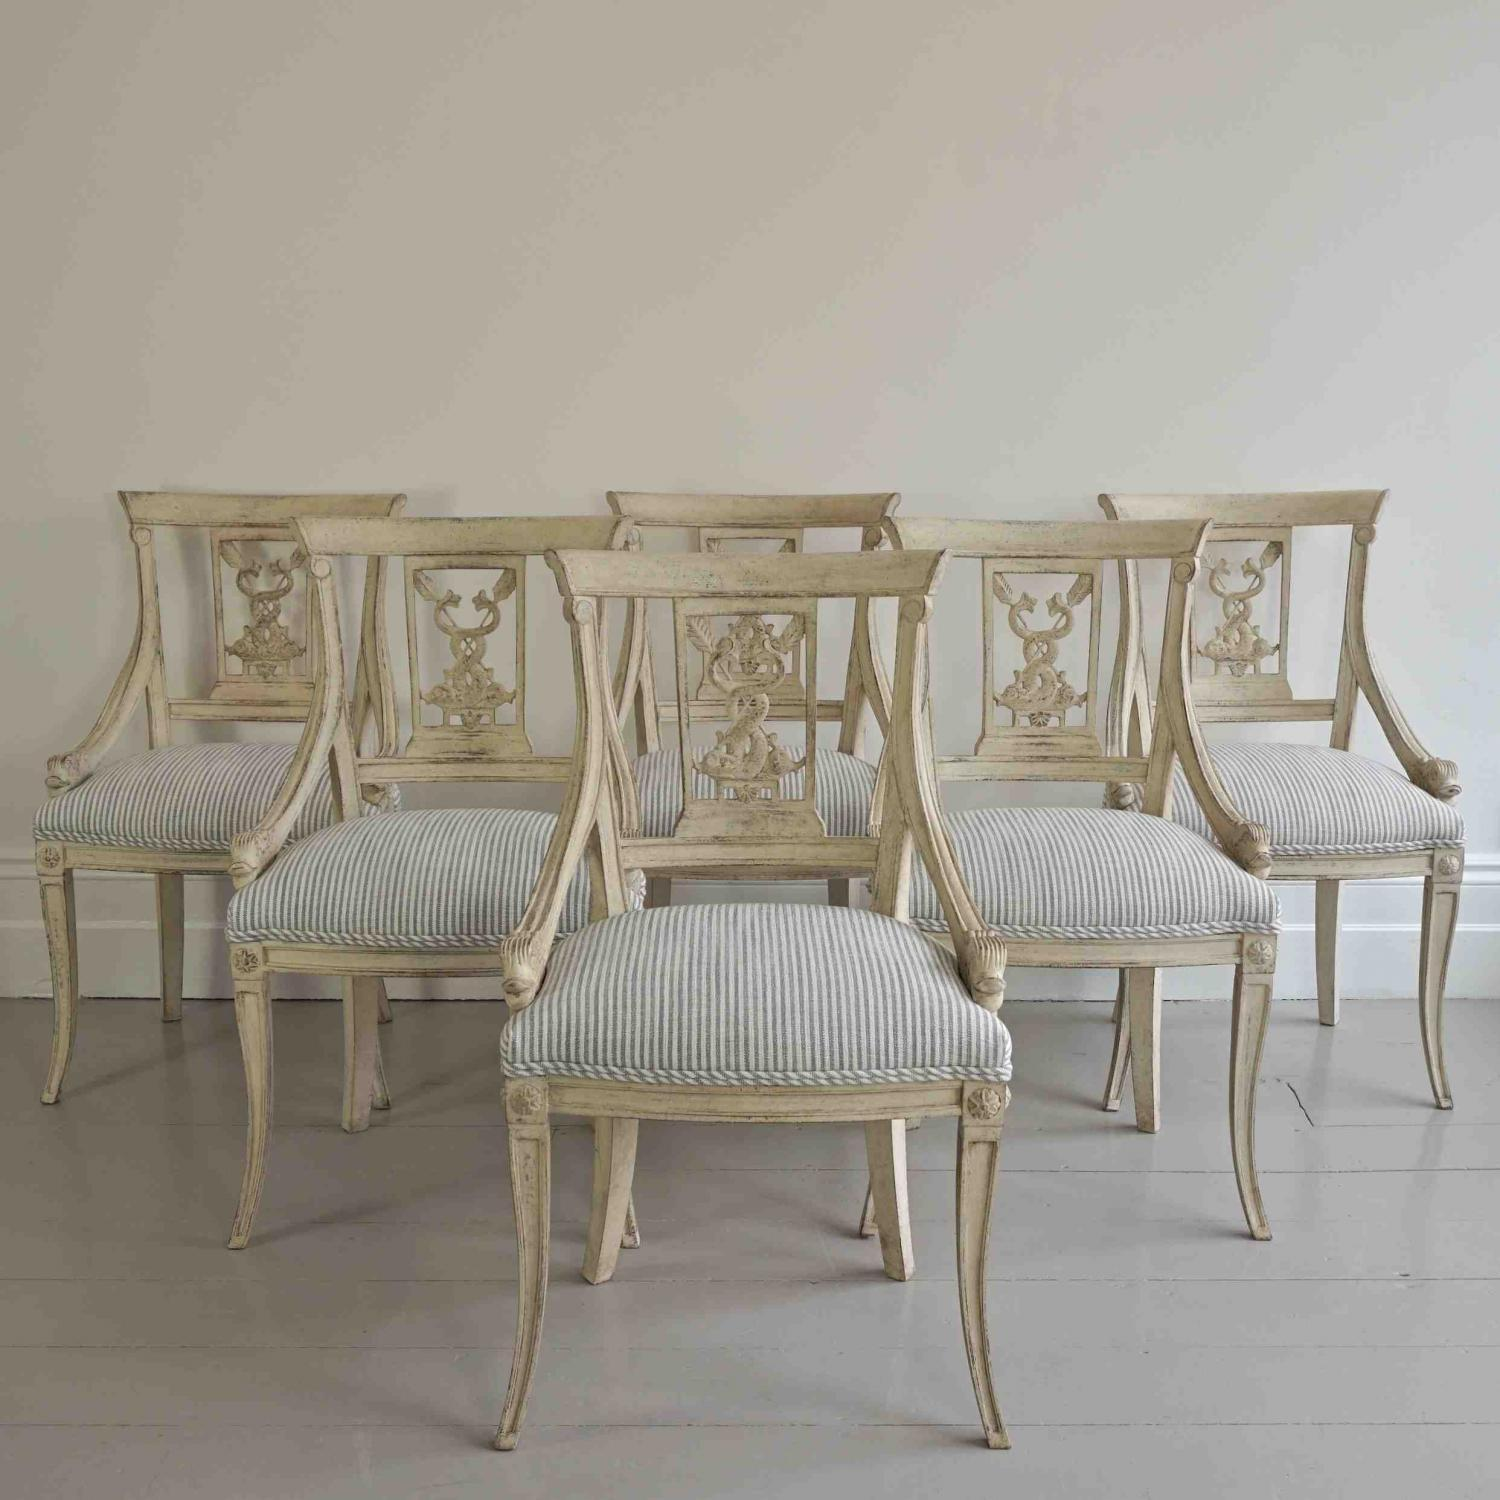 OUTSTANDING SET OF SWEDISH EMPIRE ARMCHAIRS